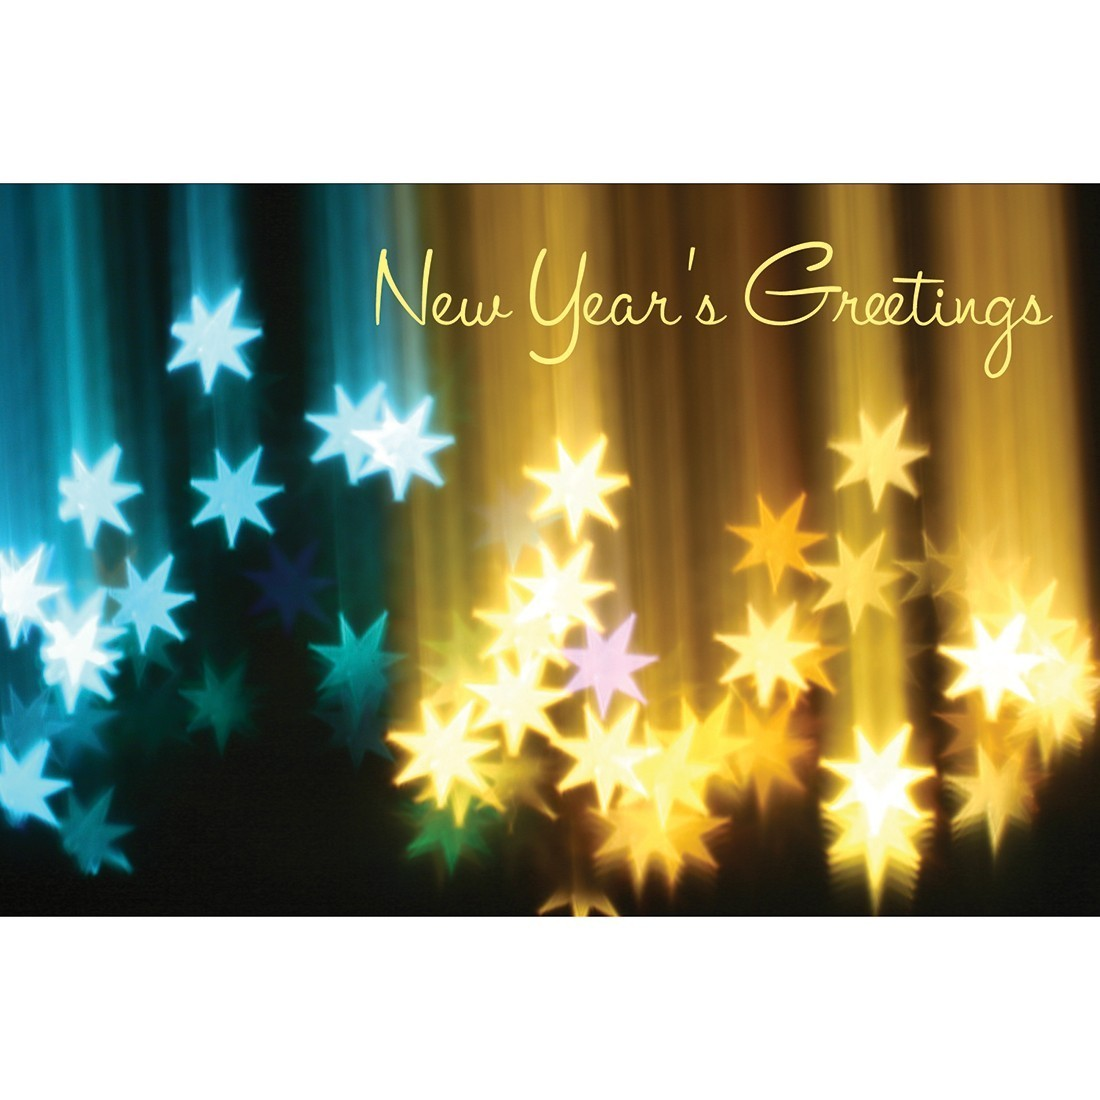 New Year Greetings Star Greeting Cards [image]